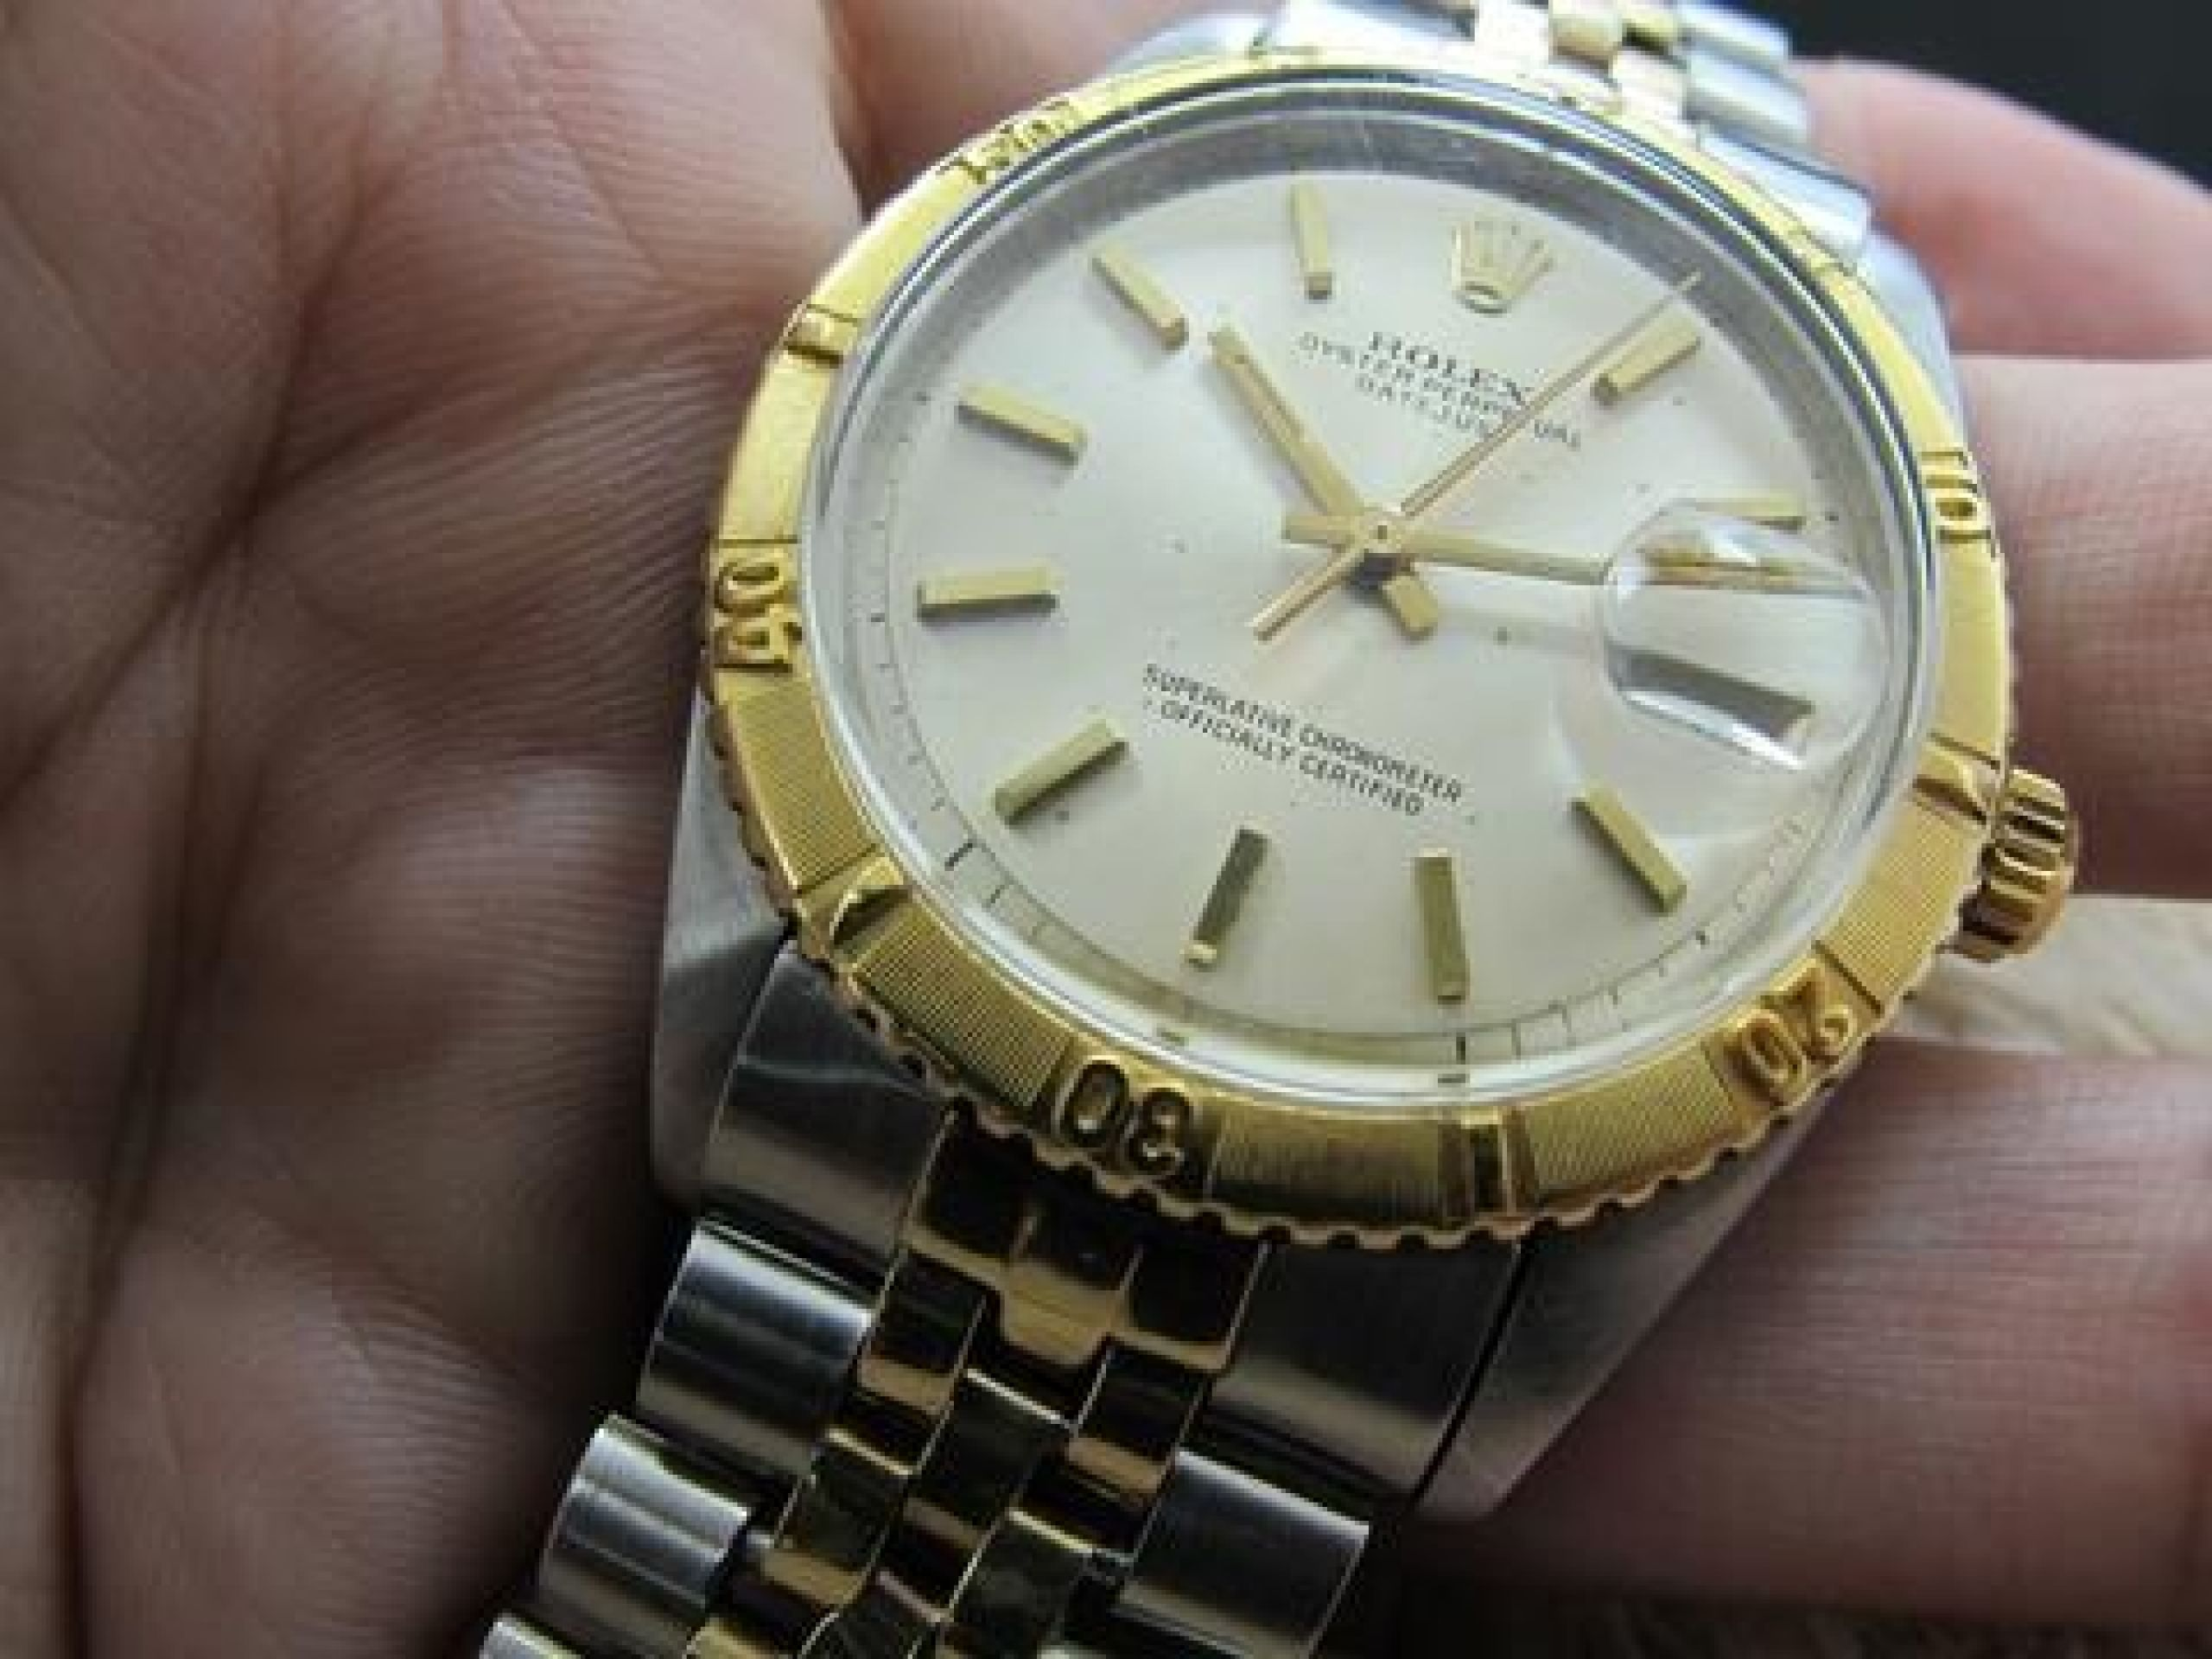 1962 ROLEX DATEJUST THUNDERBIRD 1625 2-TONE ORIGINAL SILVER DIAL WITH PAPERS